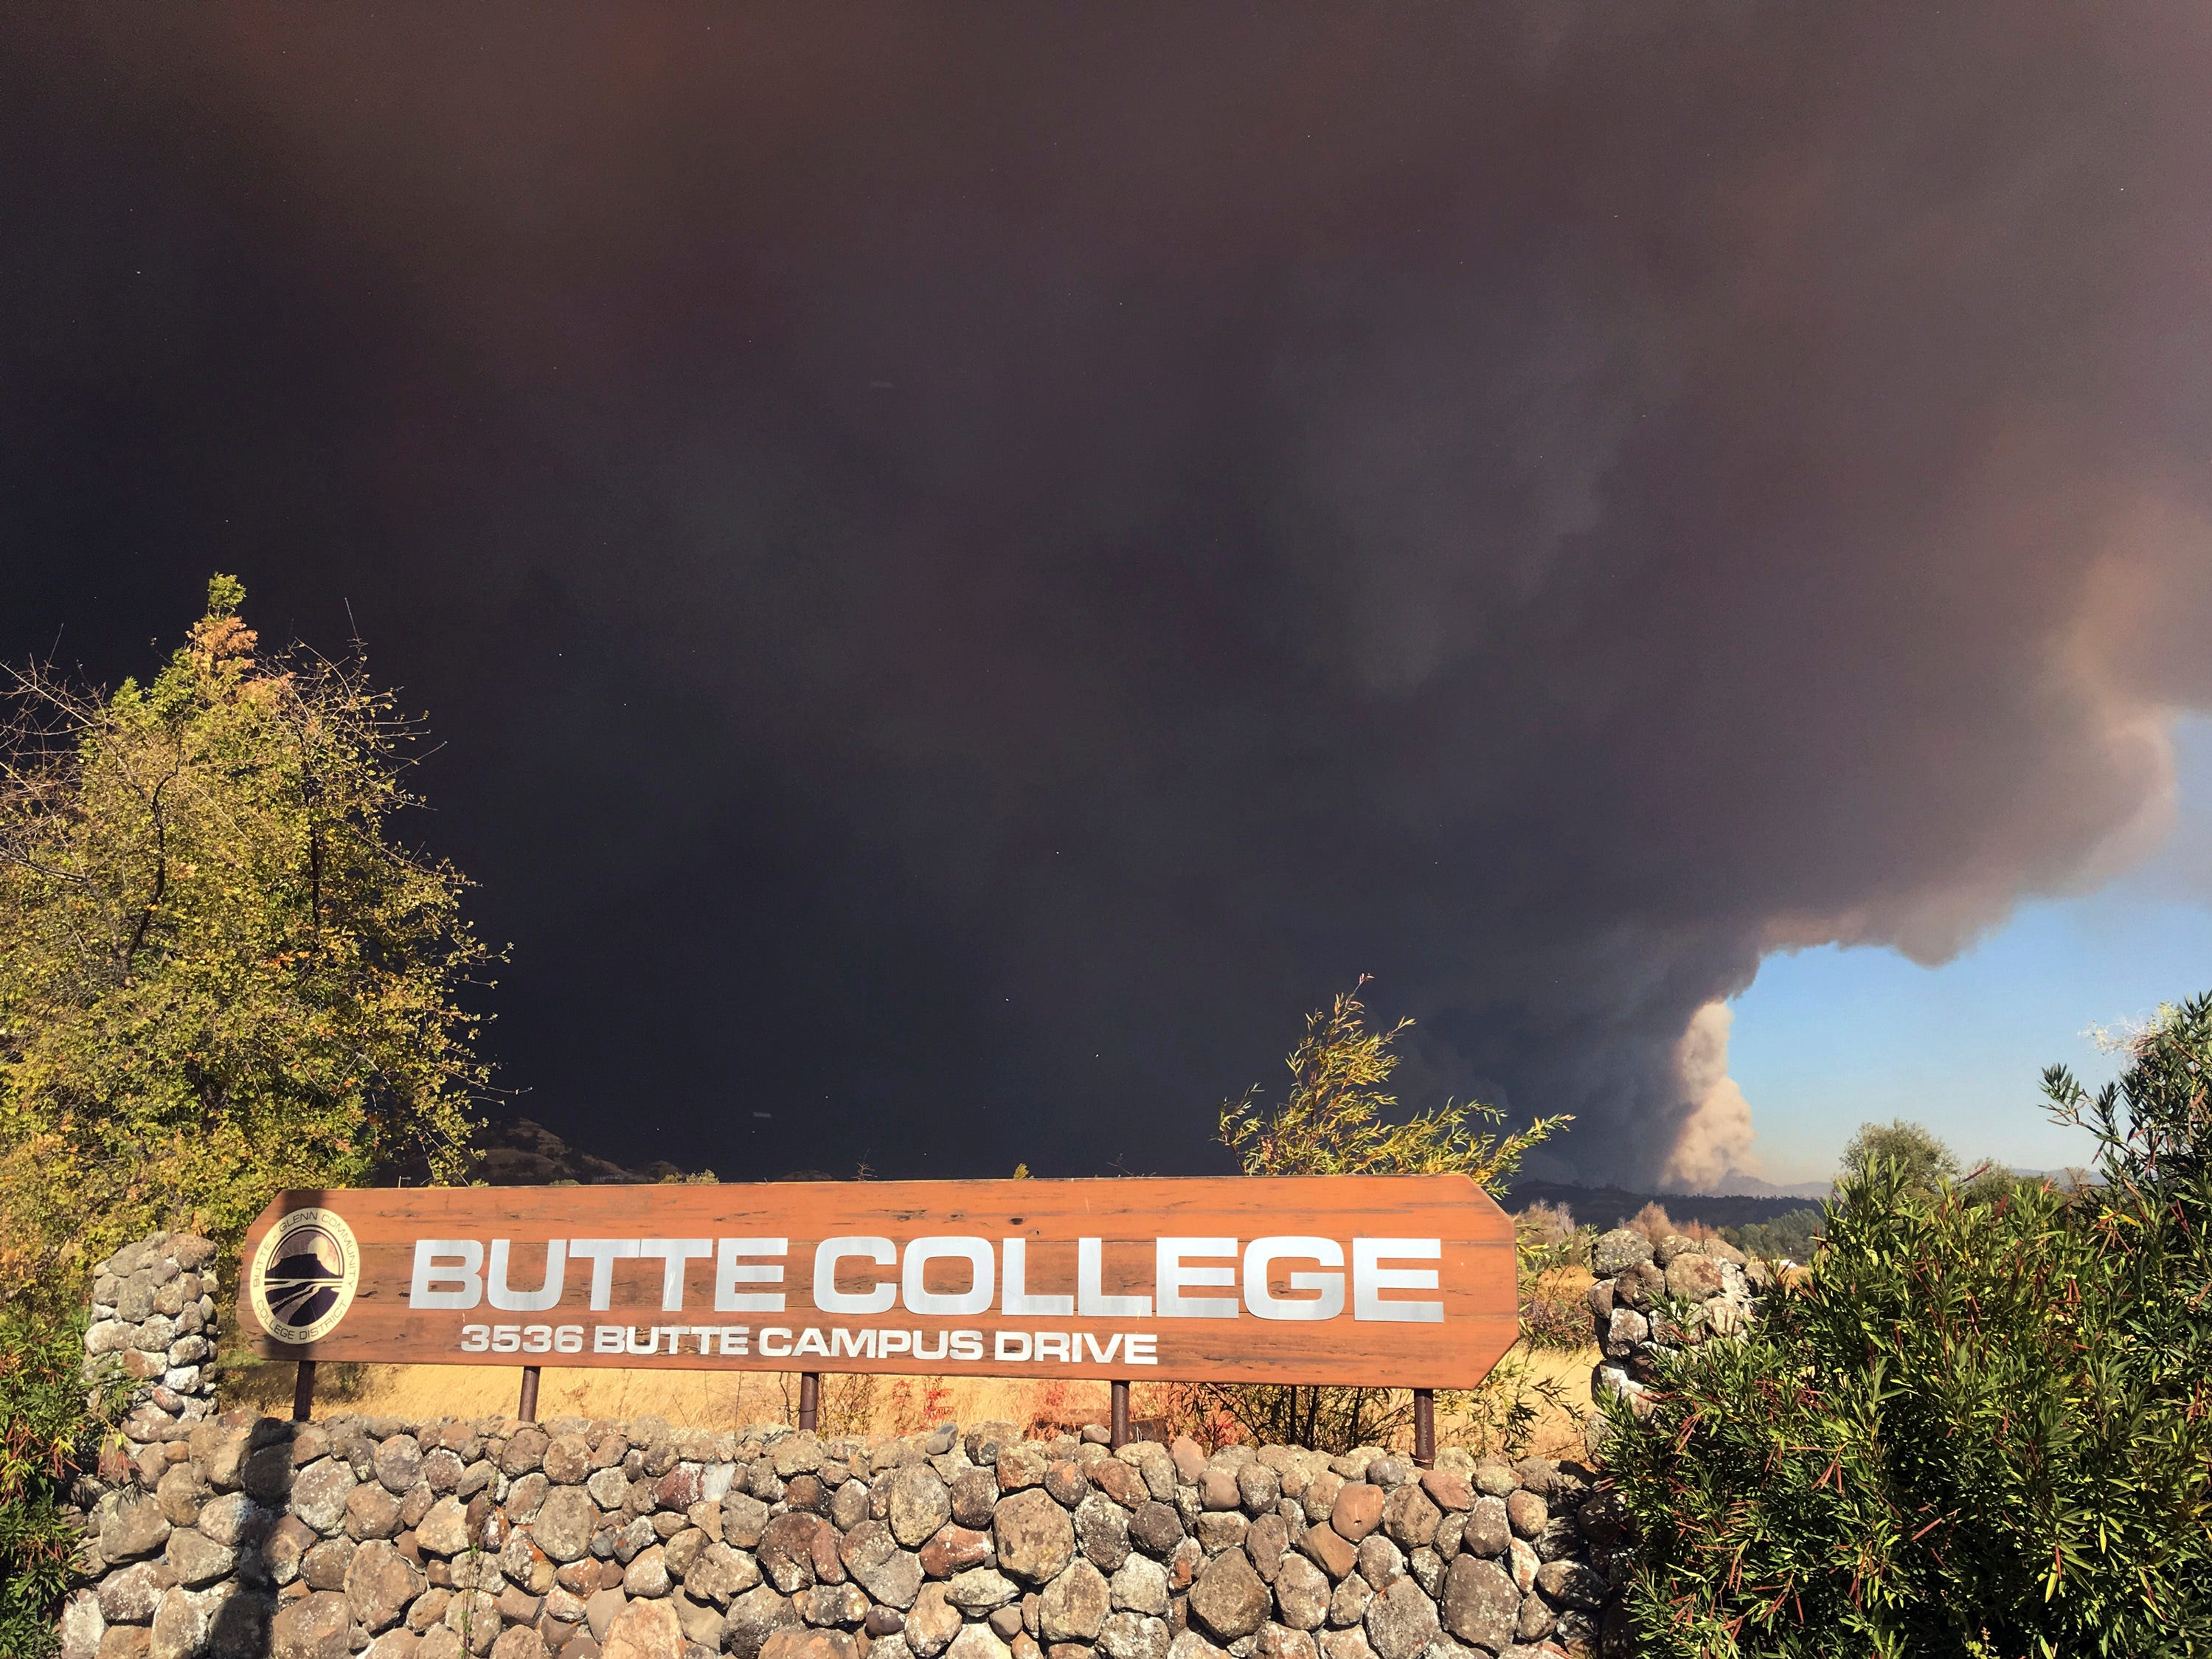 Smoke from the Camp Fire, burning in the Feather River Canyon near Paradise, Calif., darkens the sky above the Butte College sig in Oroville, Calif., Thursday, Nov. 8, 2018.